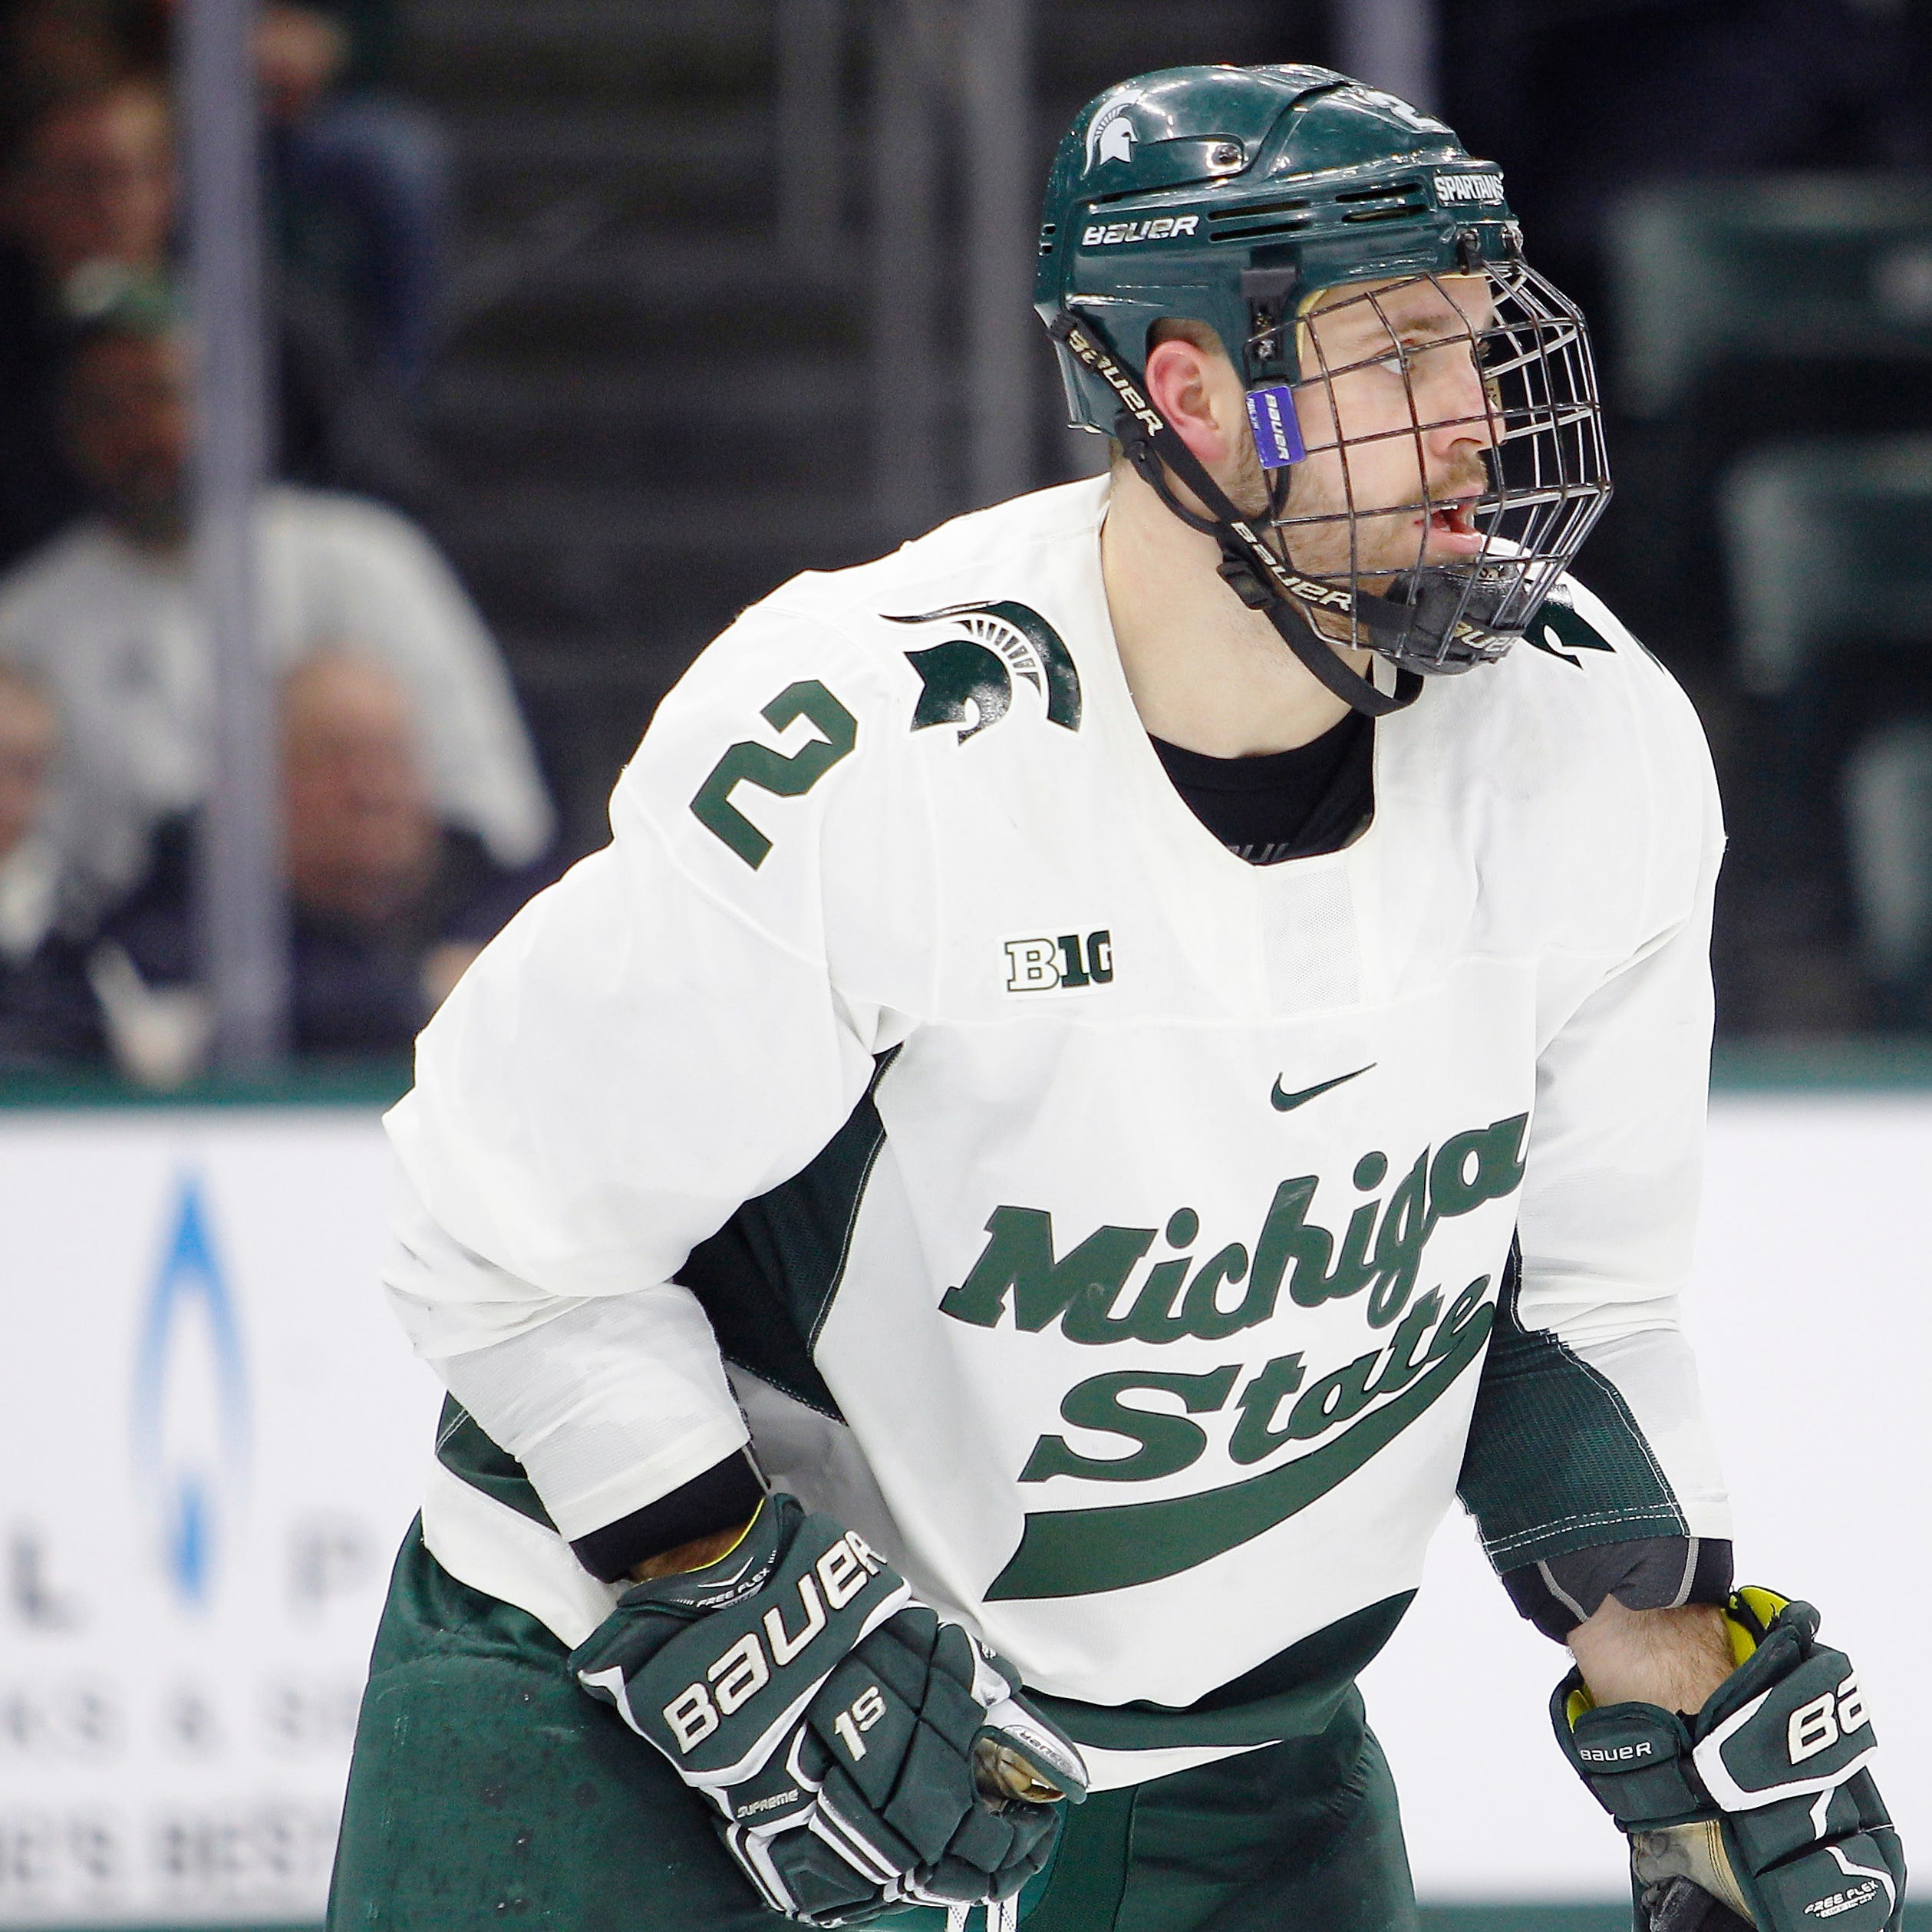 MSU hockey faces high-powered Penn State in seniors' last regular season home series